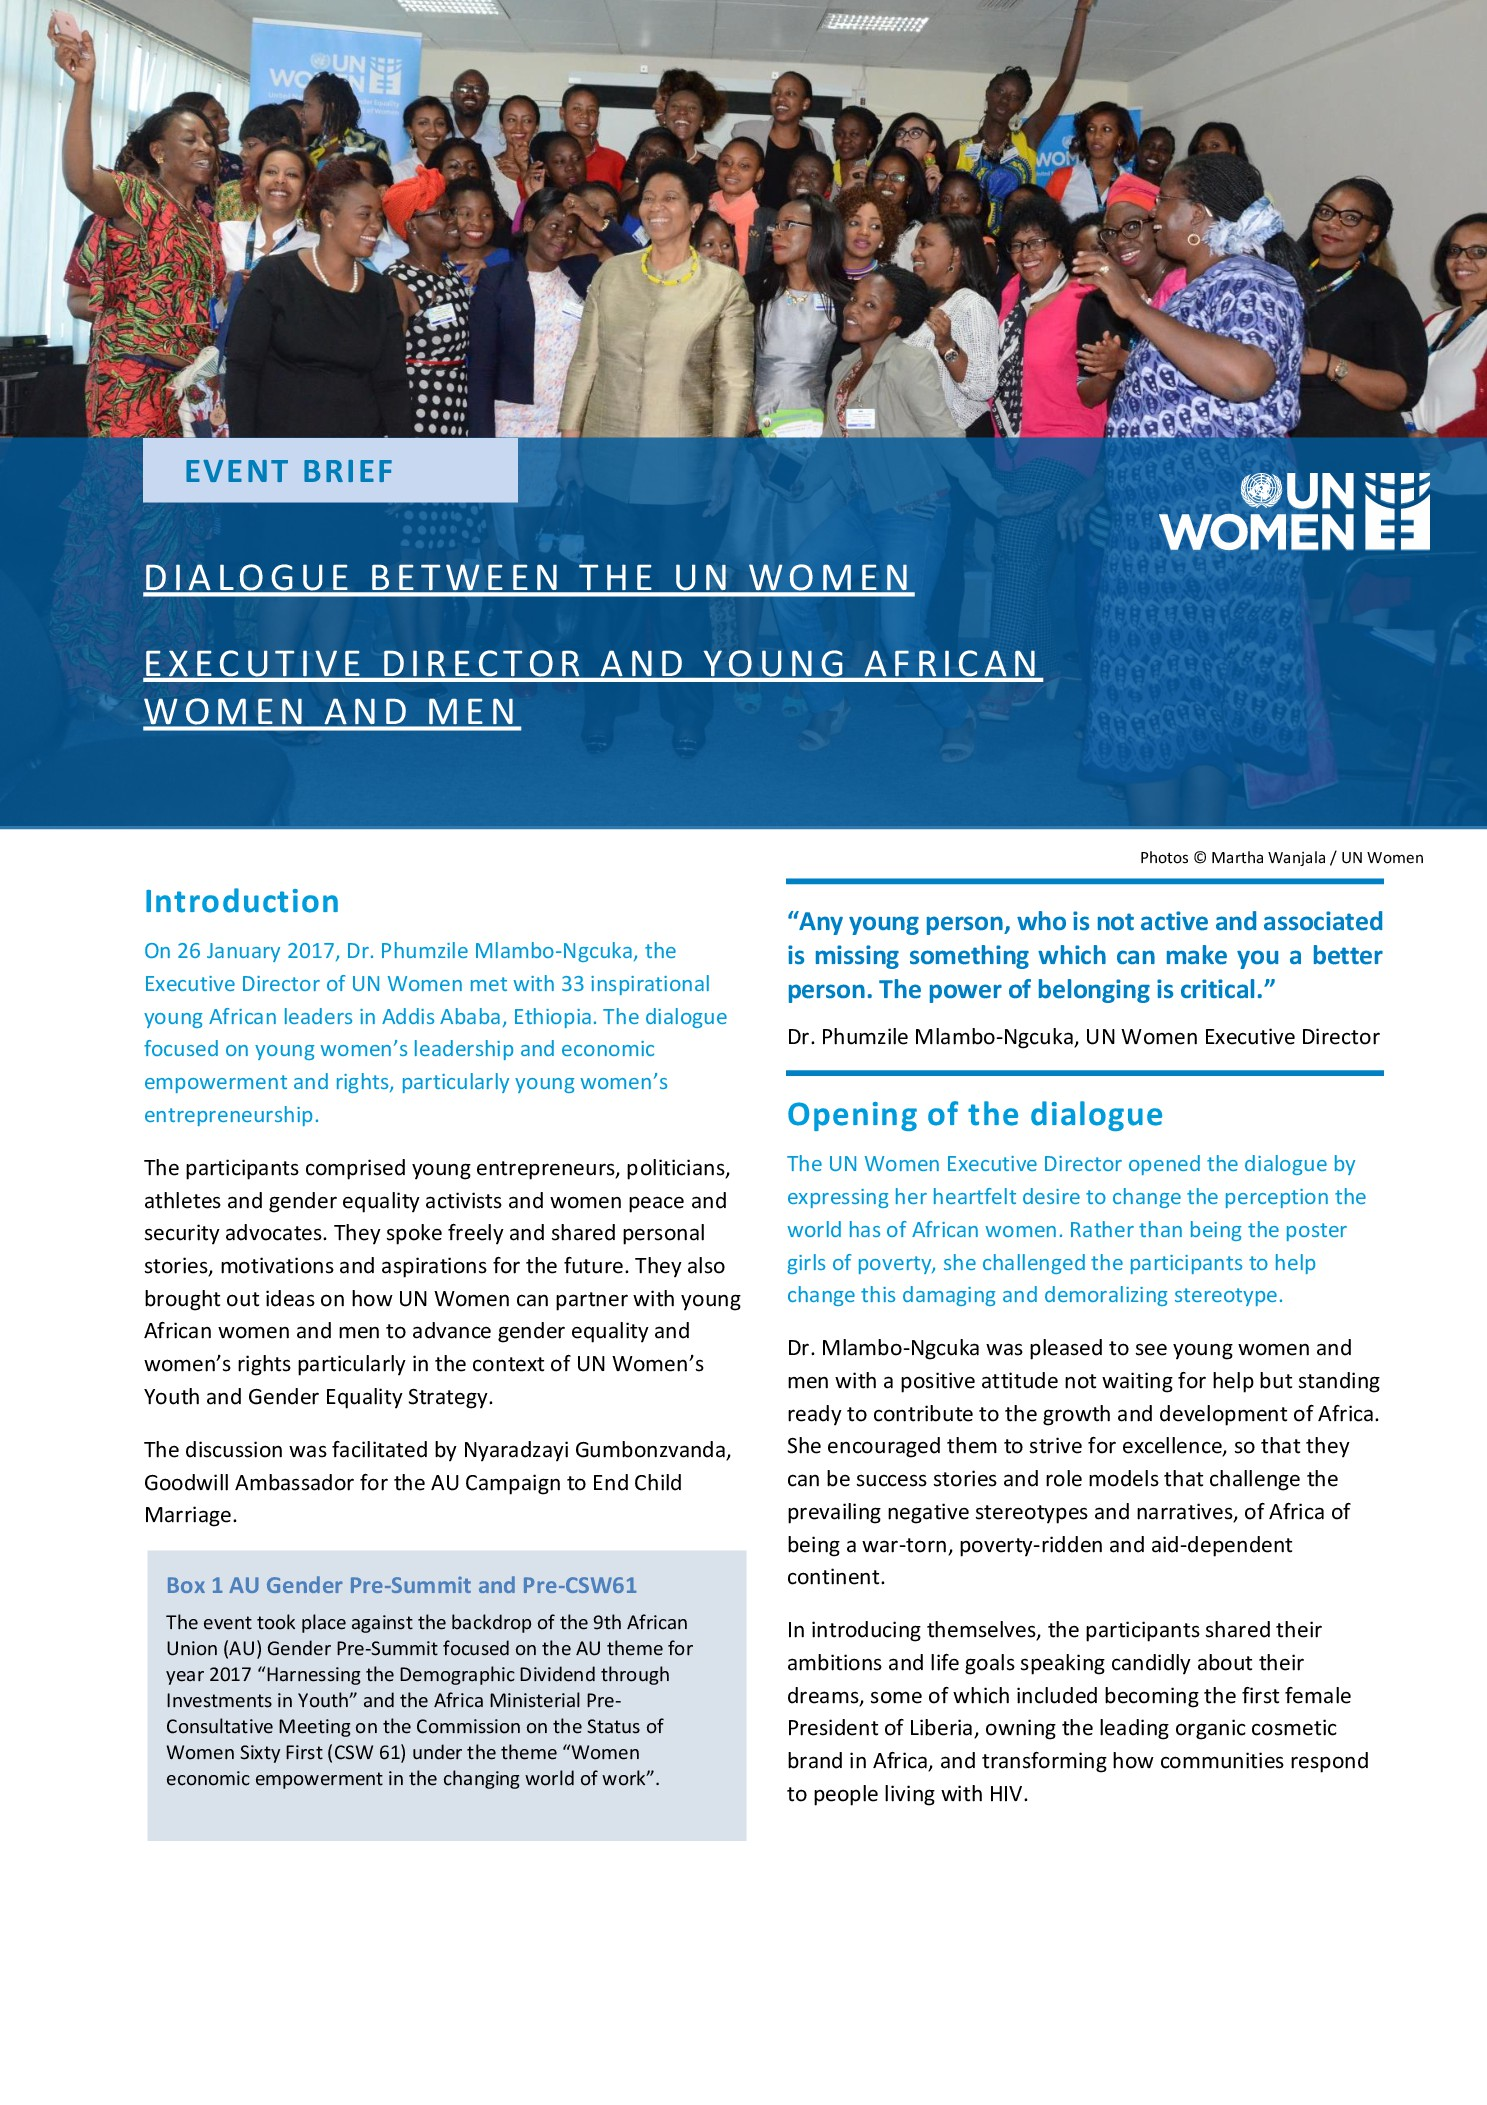 Brief: UN Women Executive Director's dialogue with African youth